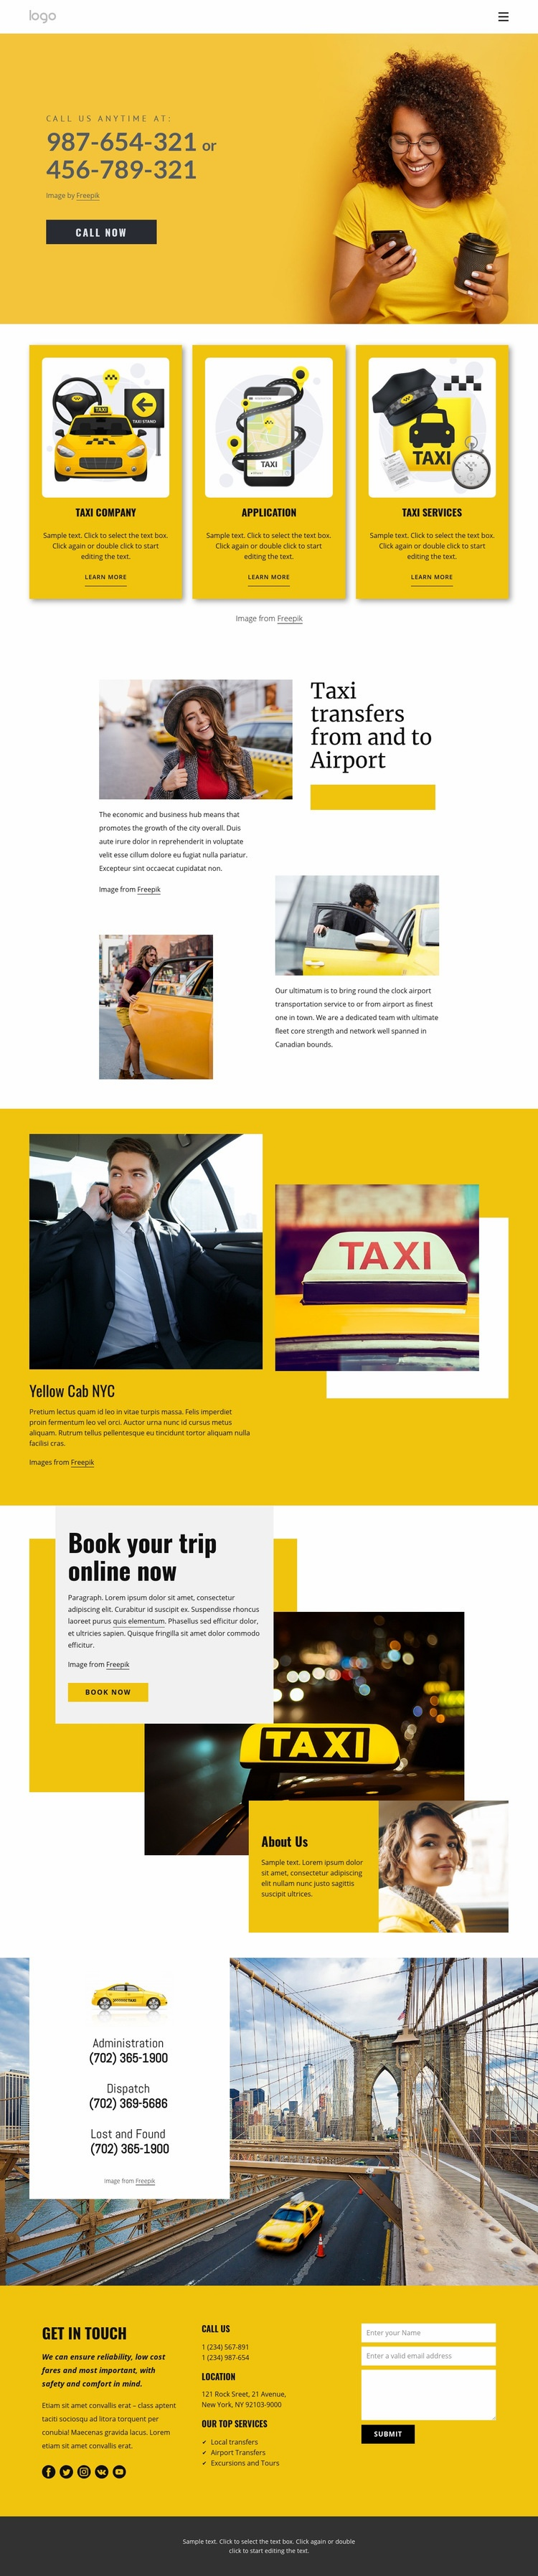 Quality taxi service Web Page Designer